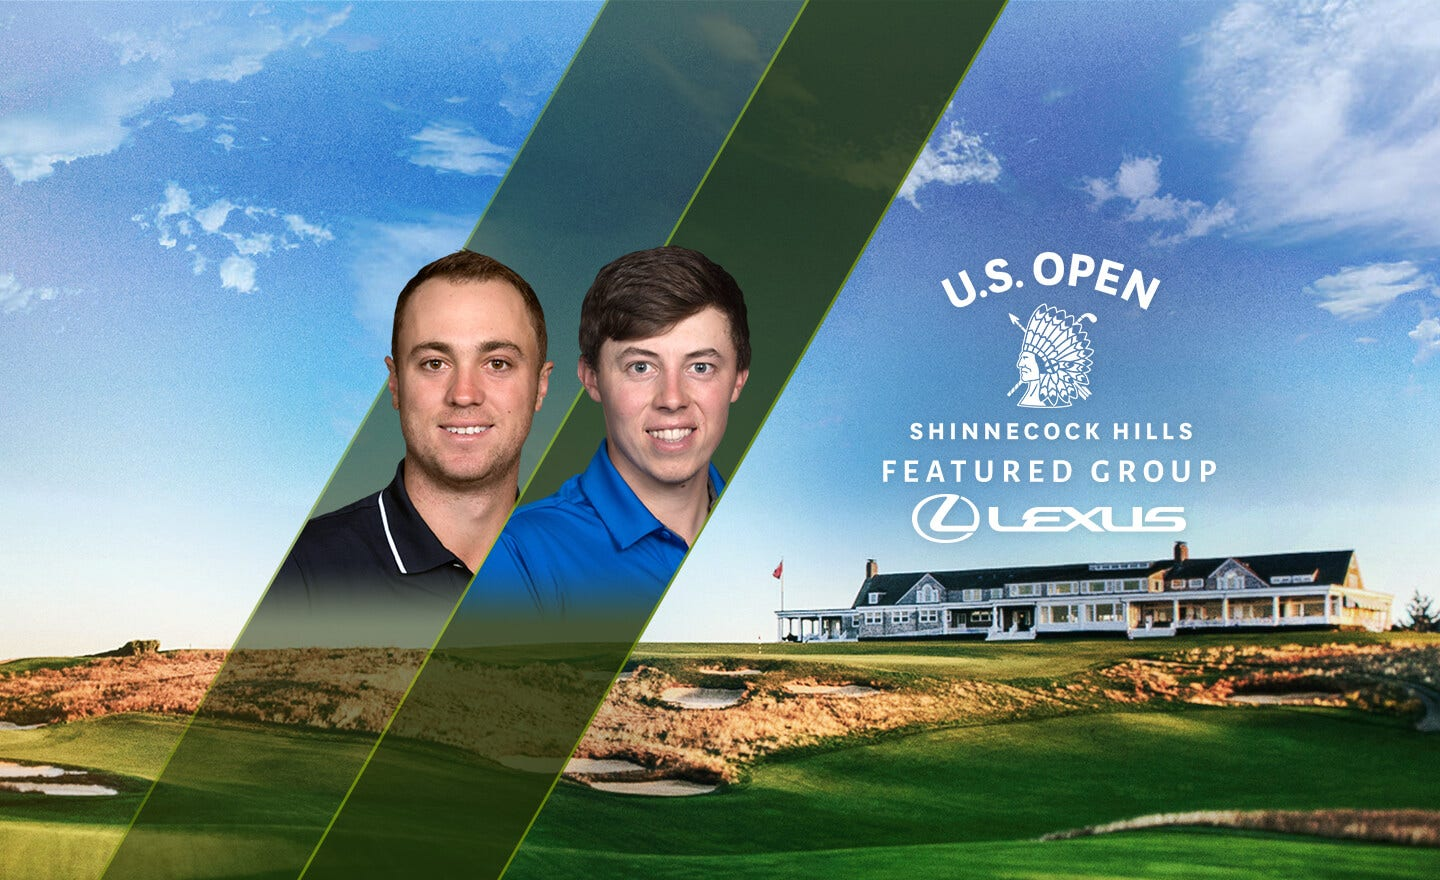 2018 U.S. Open - Featured Group #2